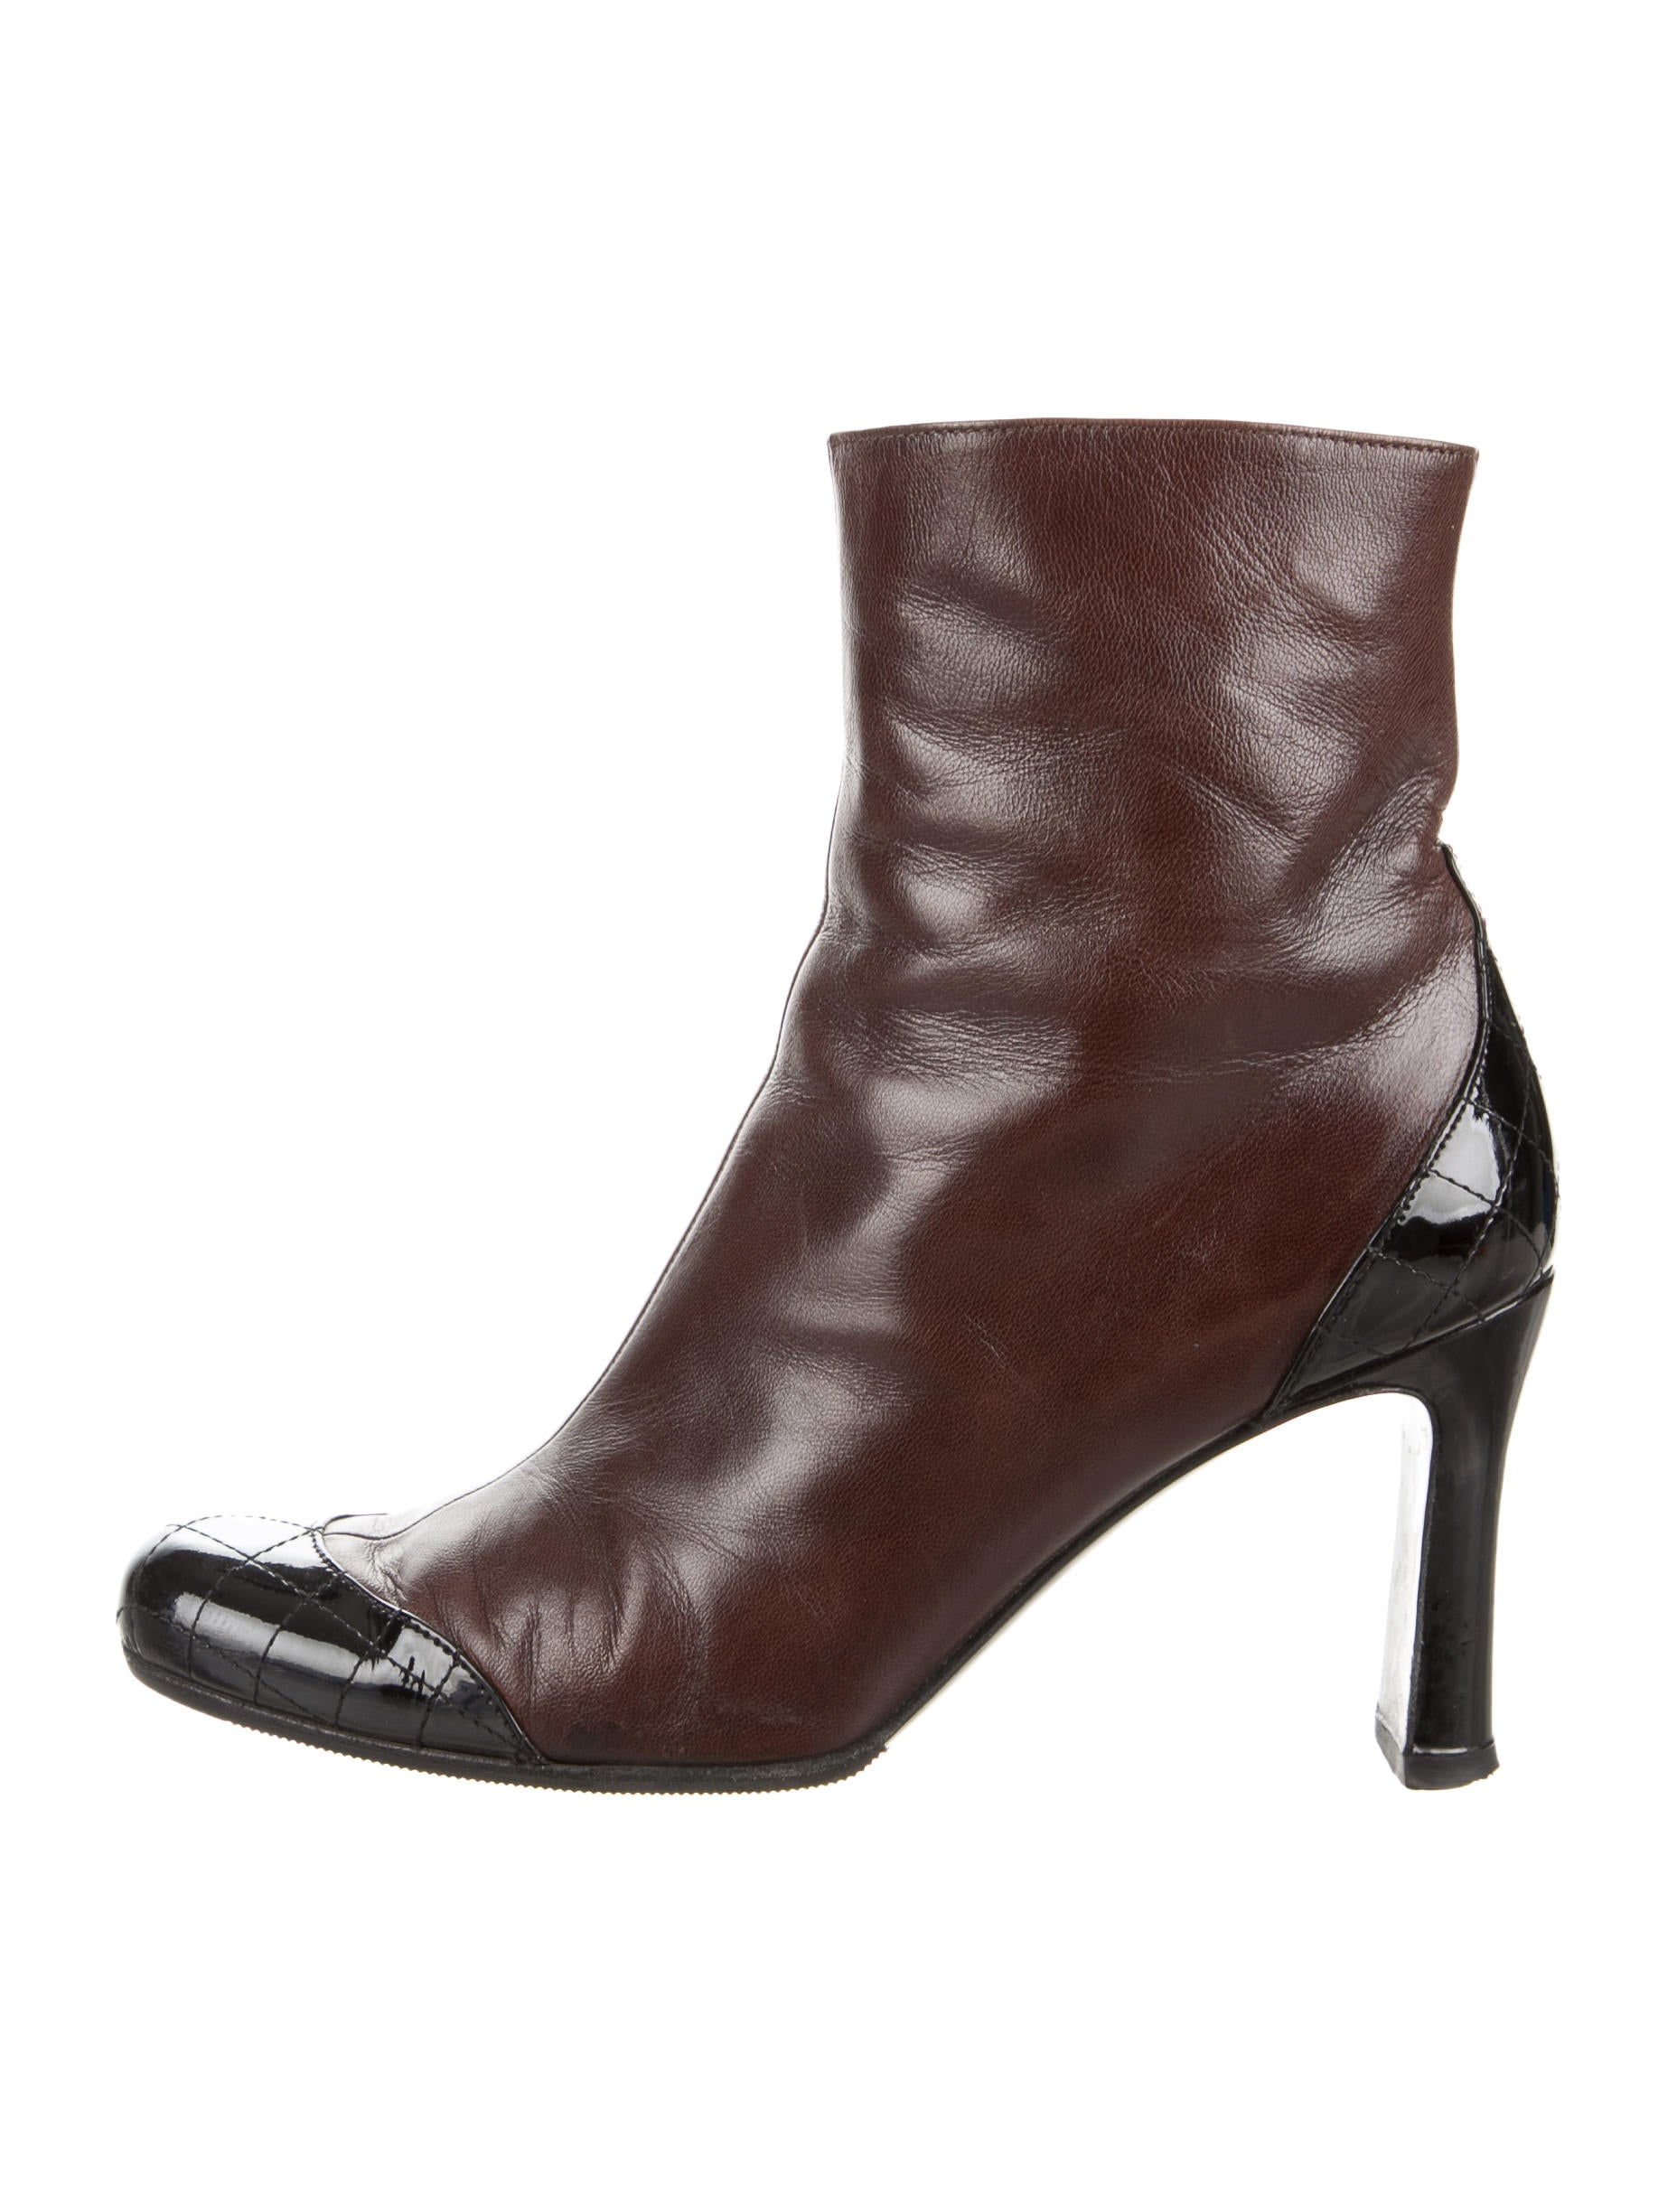 chanel quilted cap toe ankle boots shoes cha158078